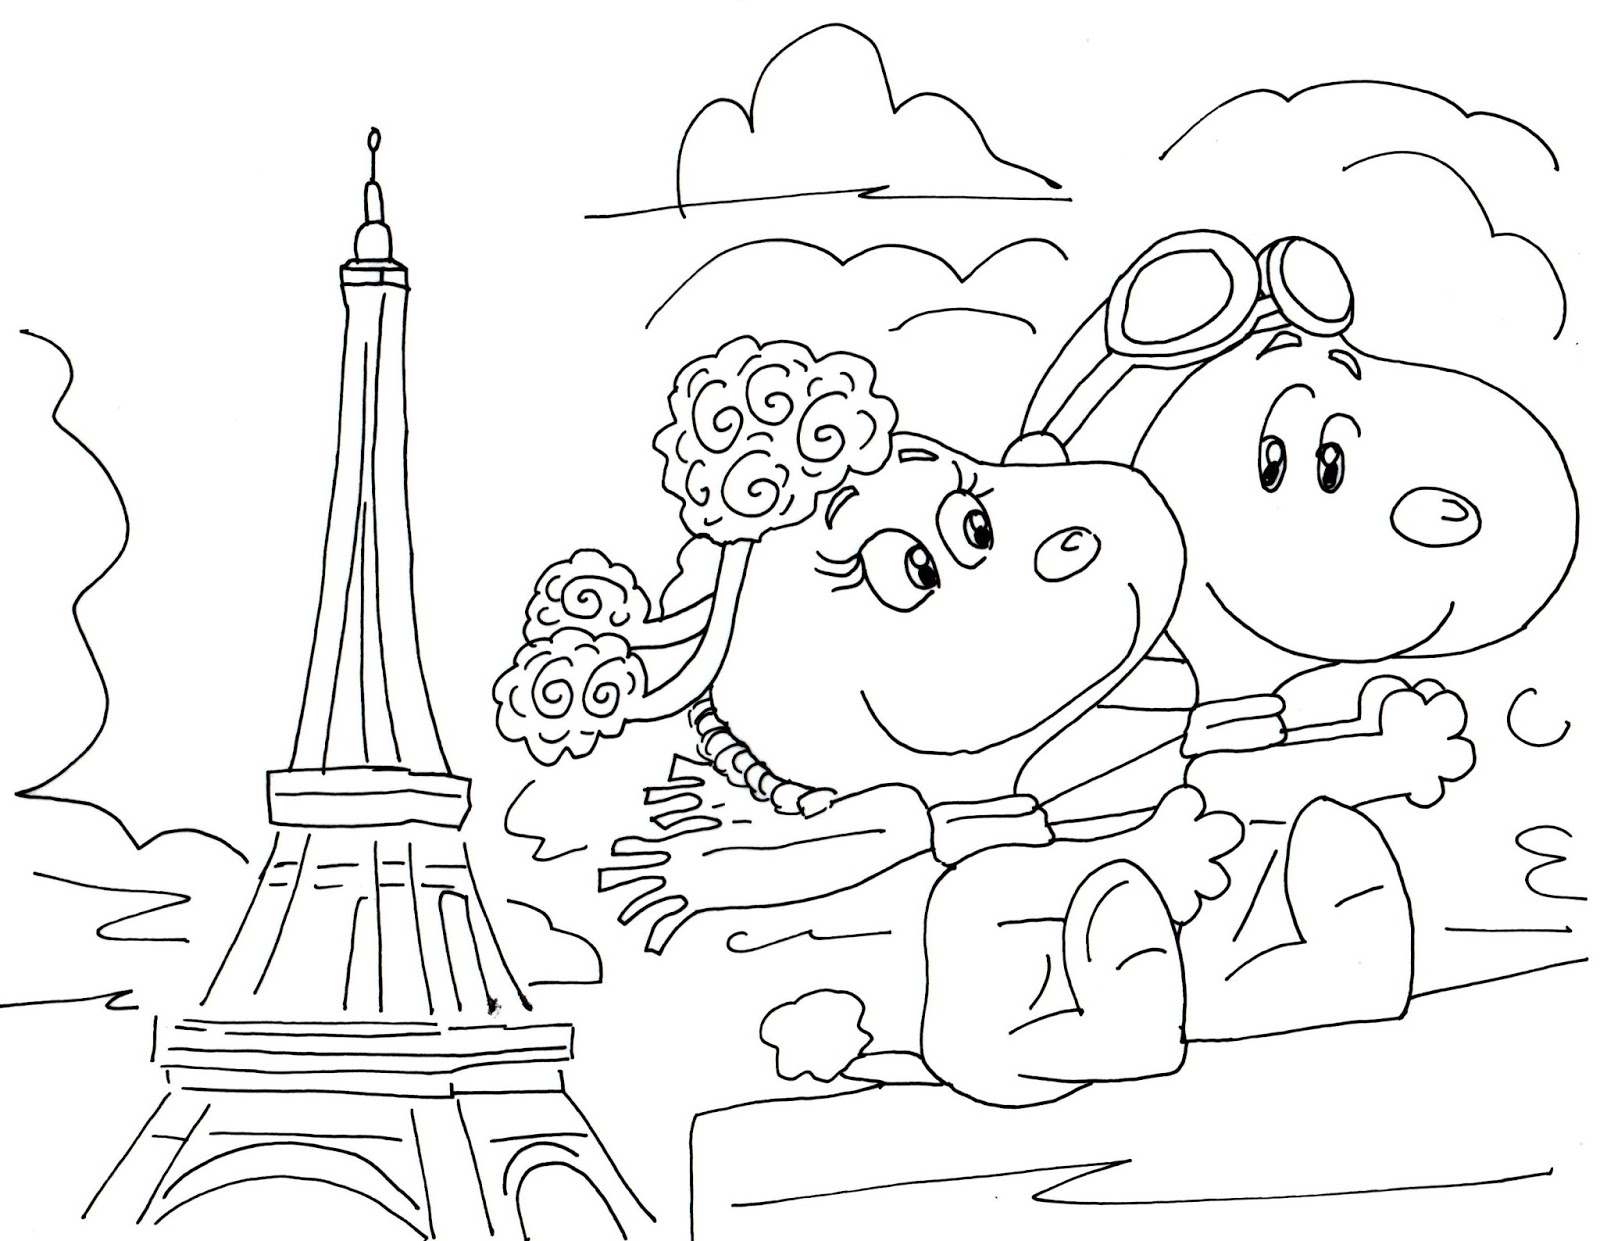 French Alphabet Coloring Pages - Mr Printables | 1241x1600